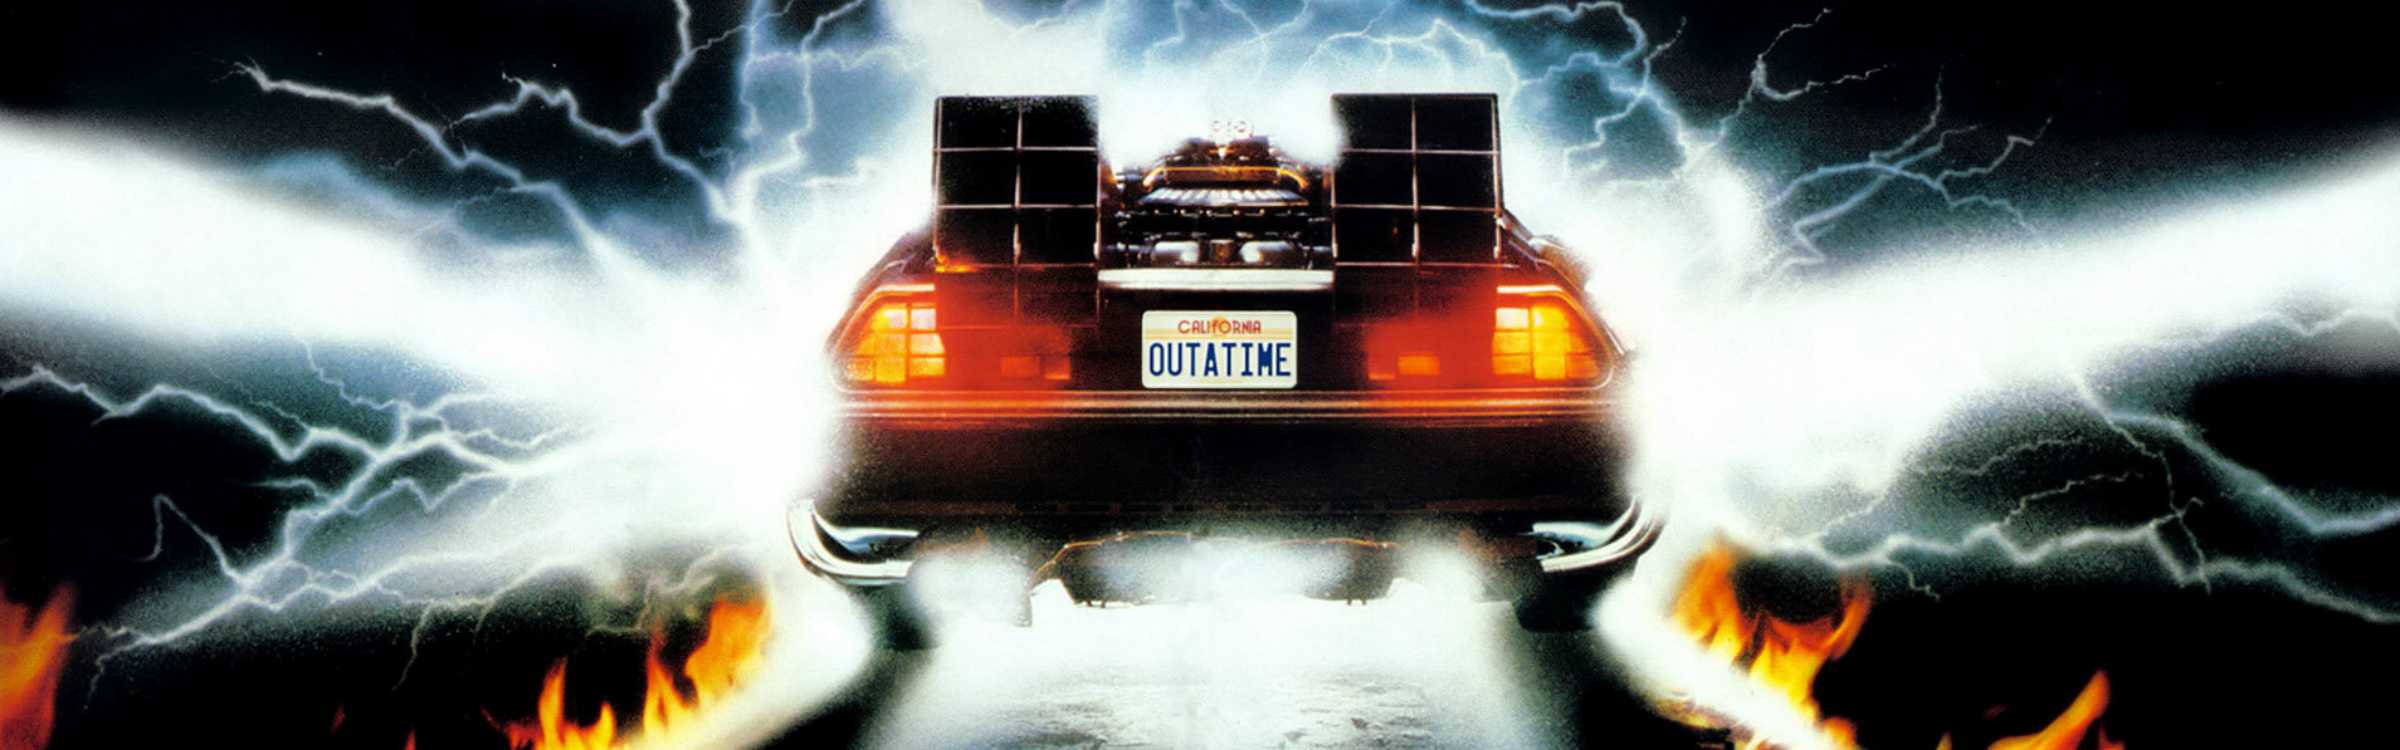 Back to the future deloreanheader